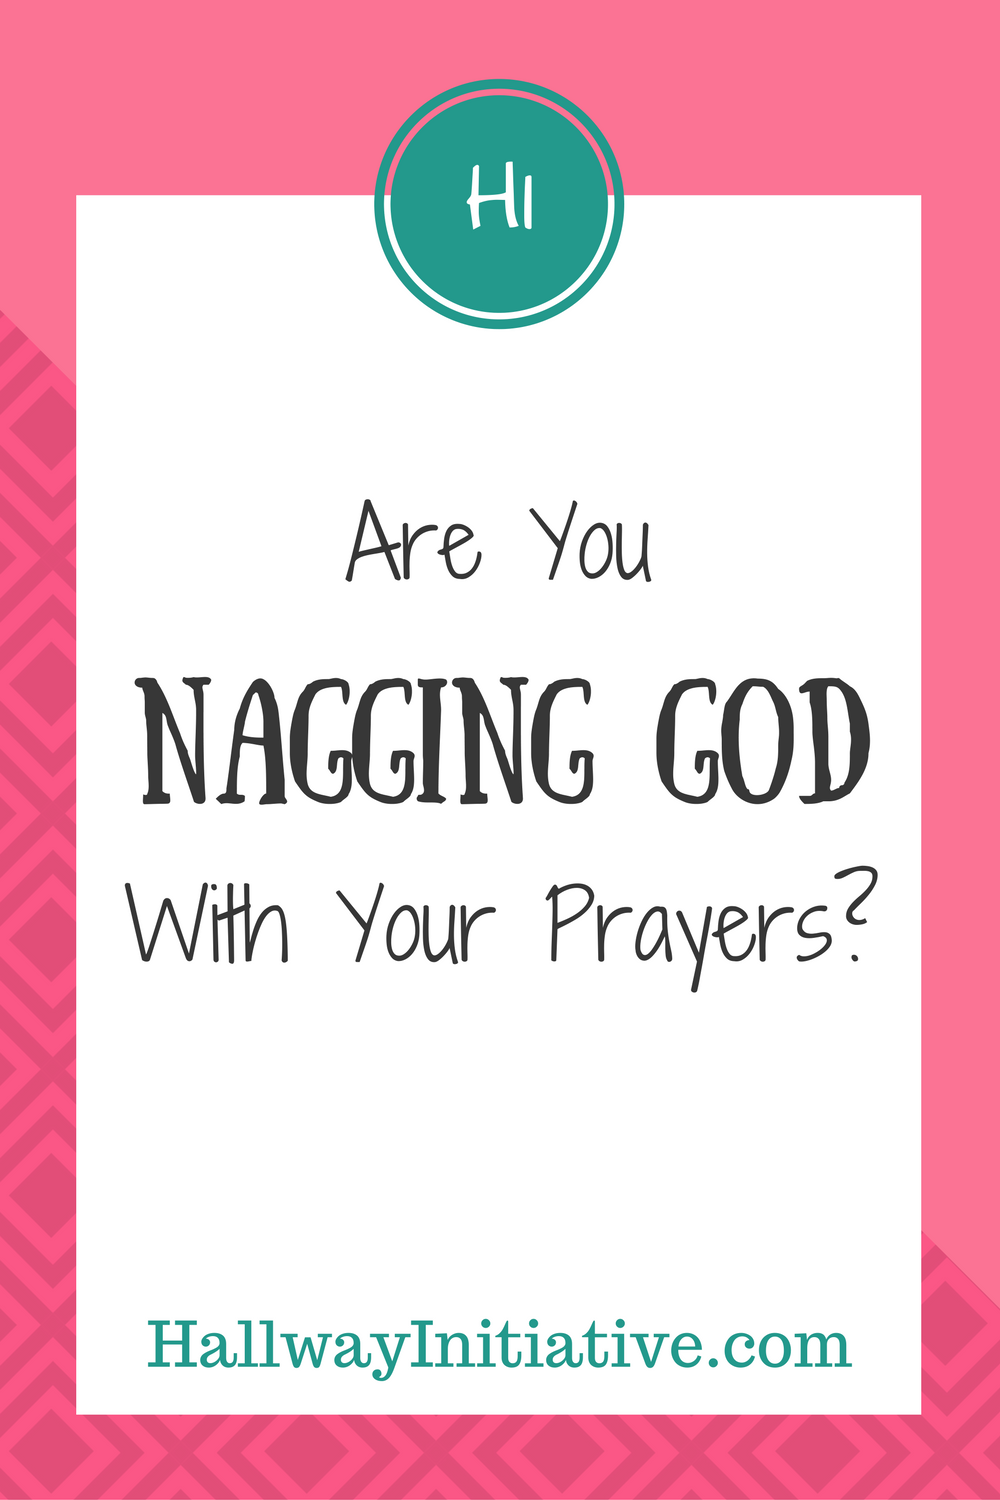 are you nagging God with your prayers?